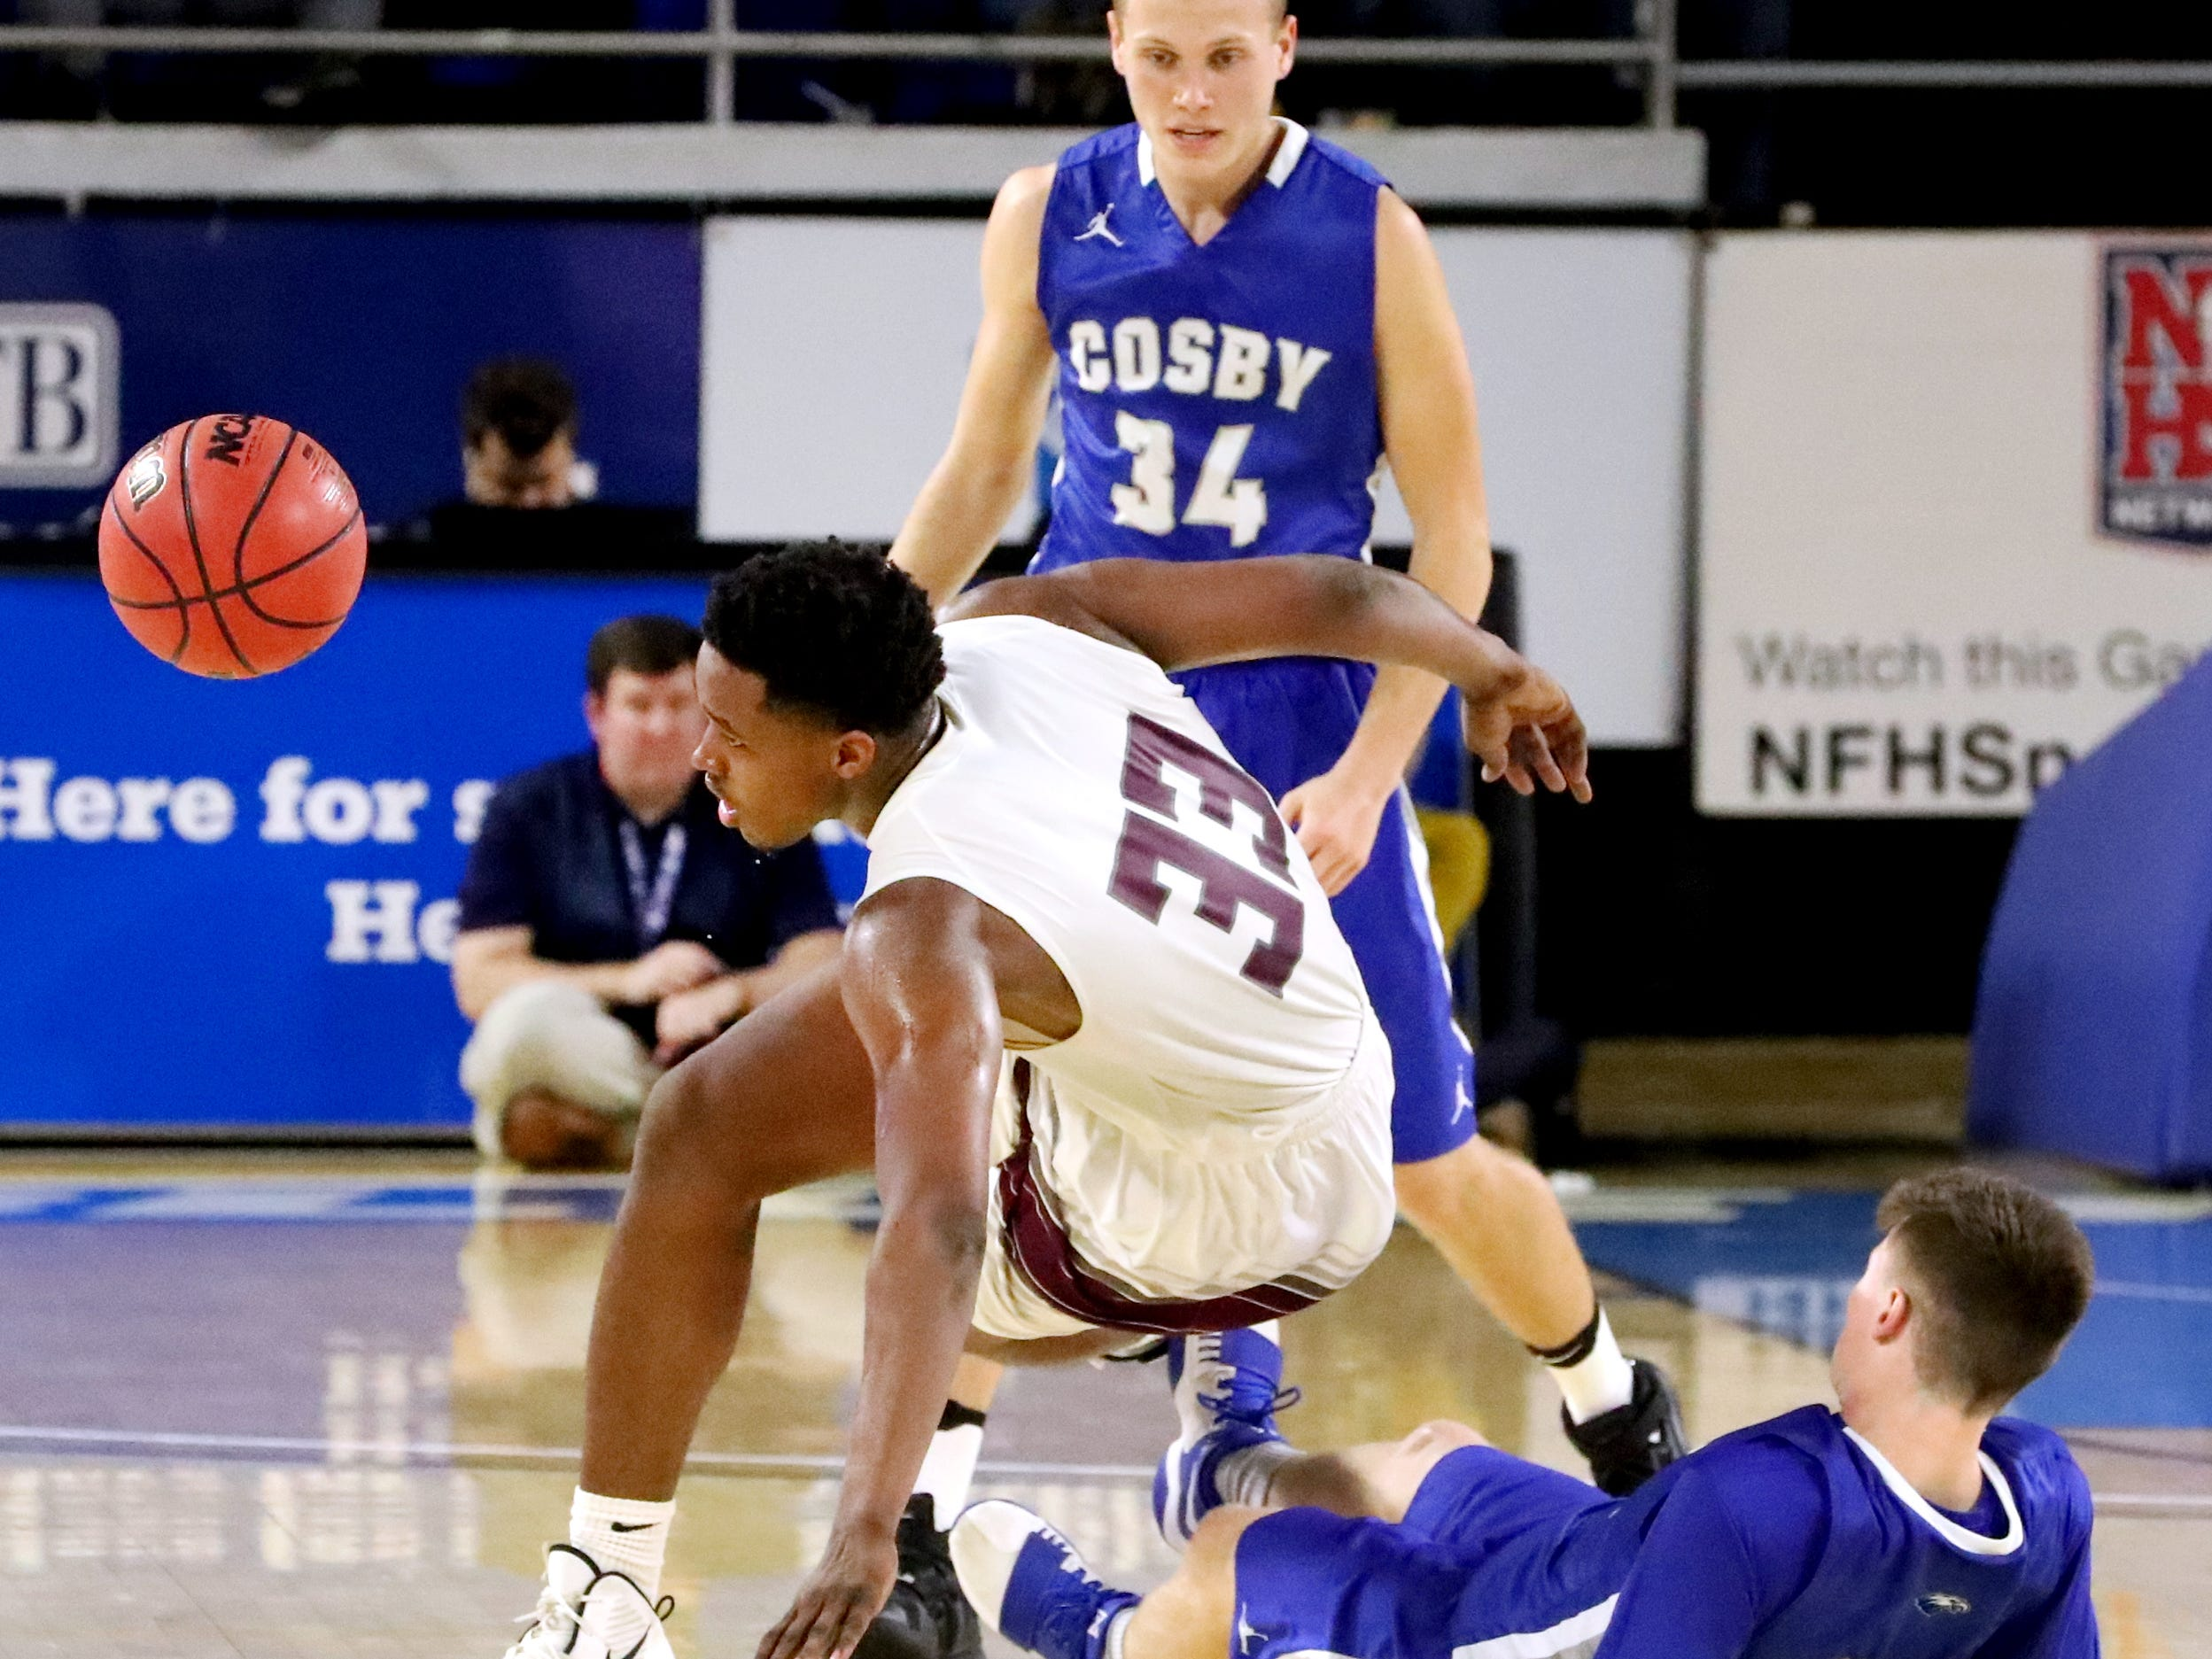 Eagleville's Demarious Stoudemire (33) and Cosby's Jeremy Wise (24) fall to the floor as Cosby's Seth Arwood (34) looks on as Stoudemire brings the ball up court during the quarterfinal round of the TSSAA Class A Boys State Tournament, on Thursday, March 14, 2019, at Murphy Center in Murfreesboro, Tenn.